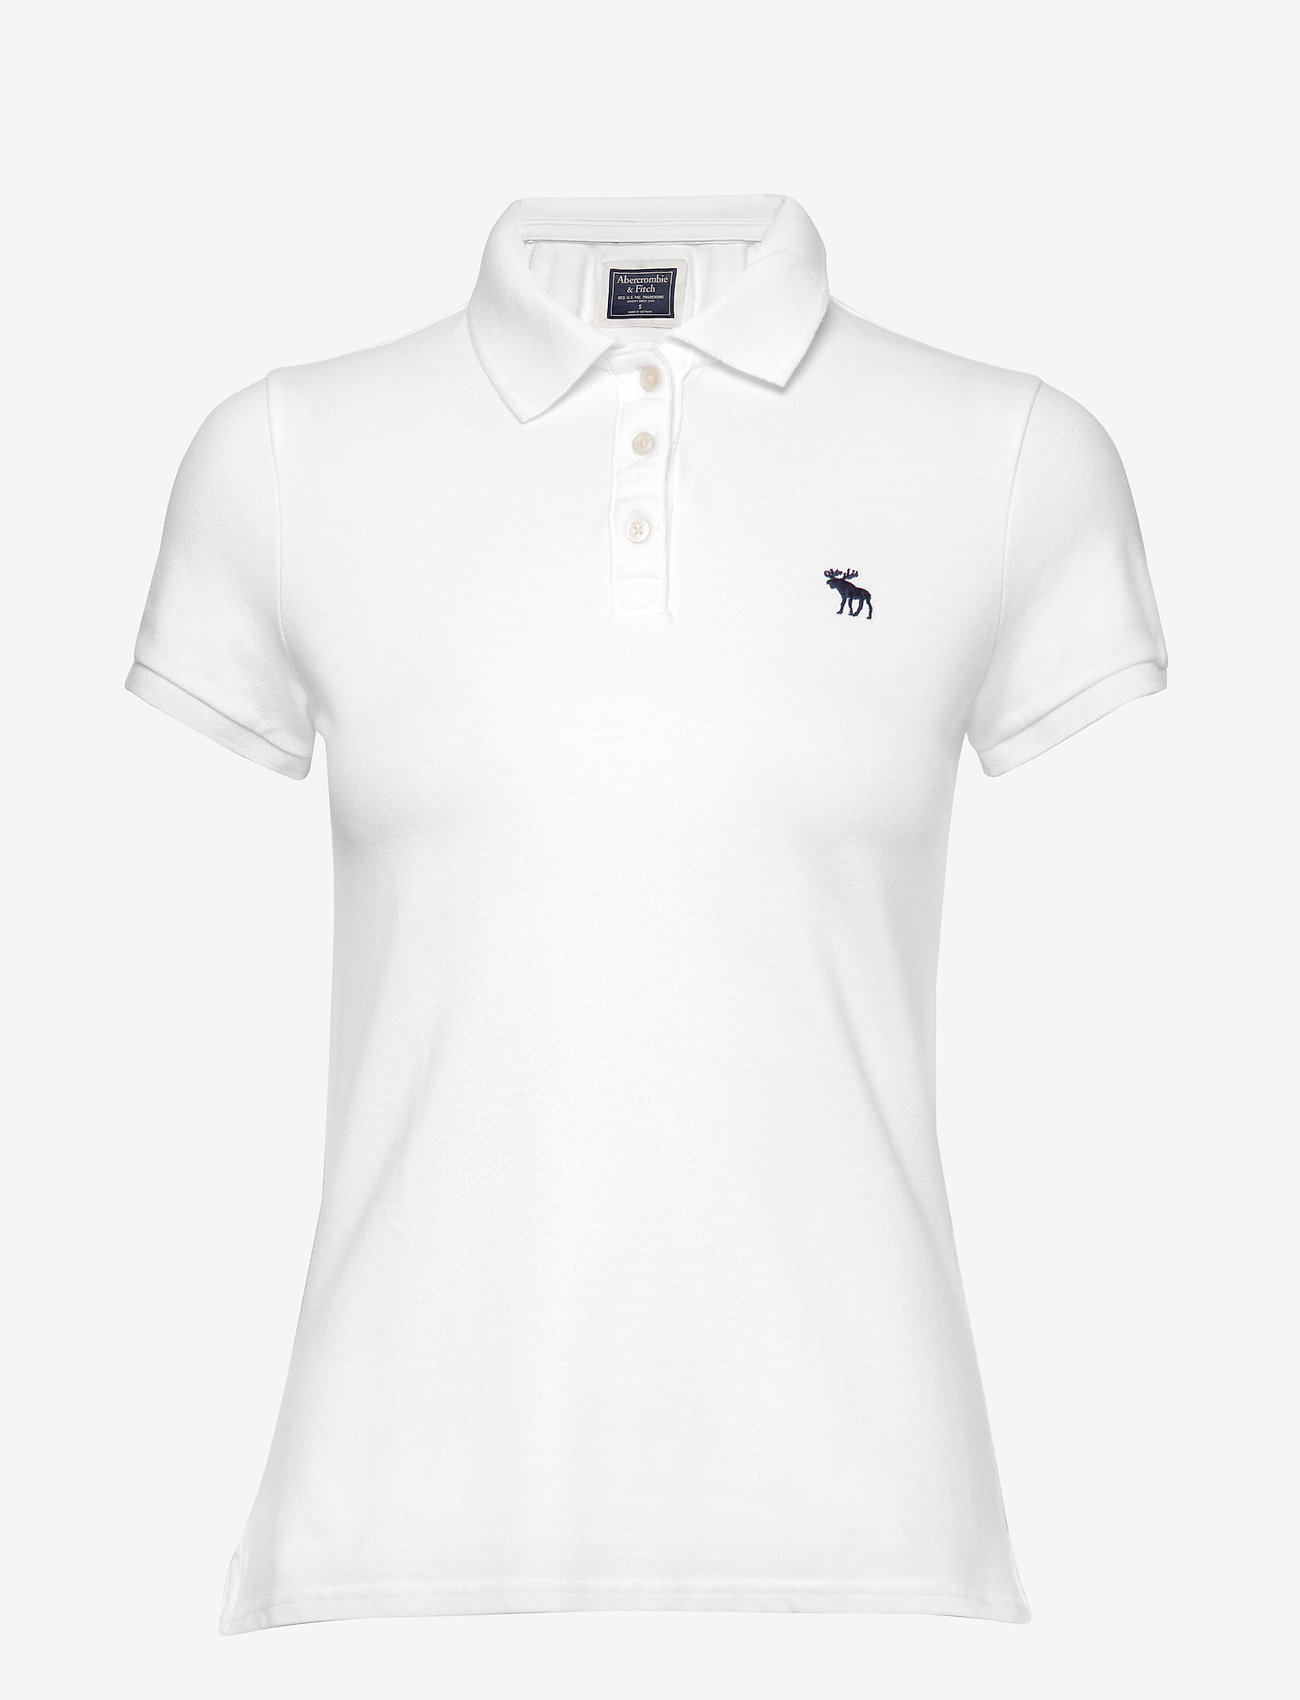 Abercrombie & Fitch - Polo - basic t-shirts - white - 0